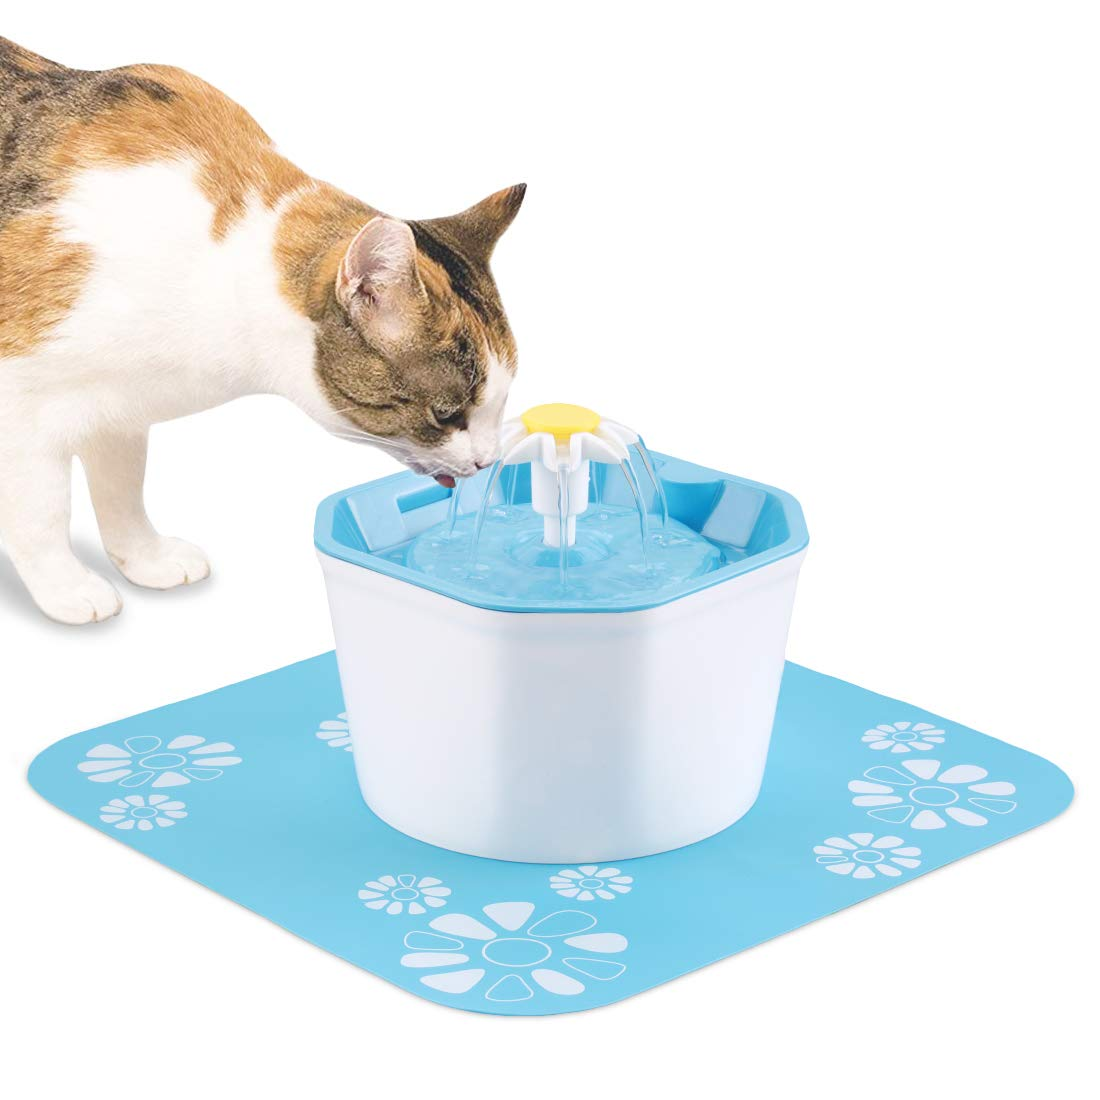 Shinea Cat Water Fountain, 1.6L Automatic Pet Water Dispenser Healthy & Hygienic Drinking Bowl Super Quiet for Cats, Dogs, Multiple Pets